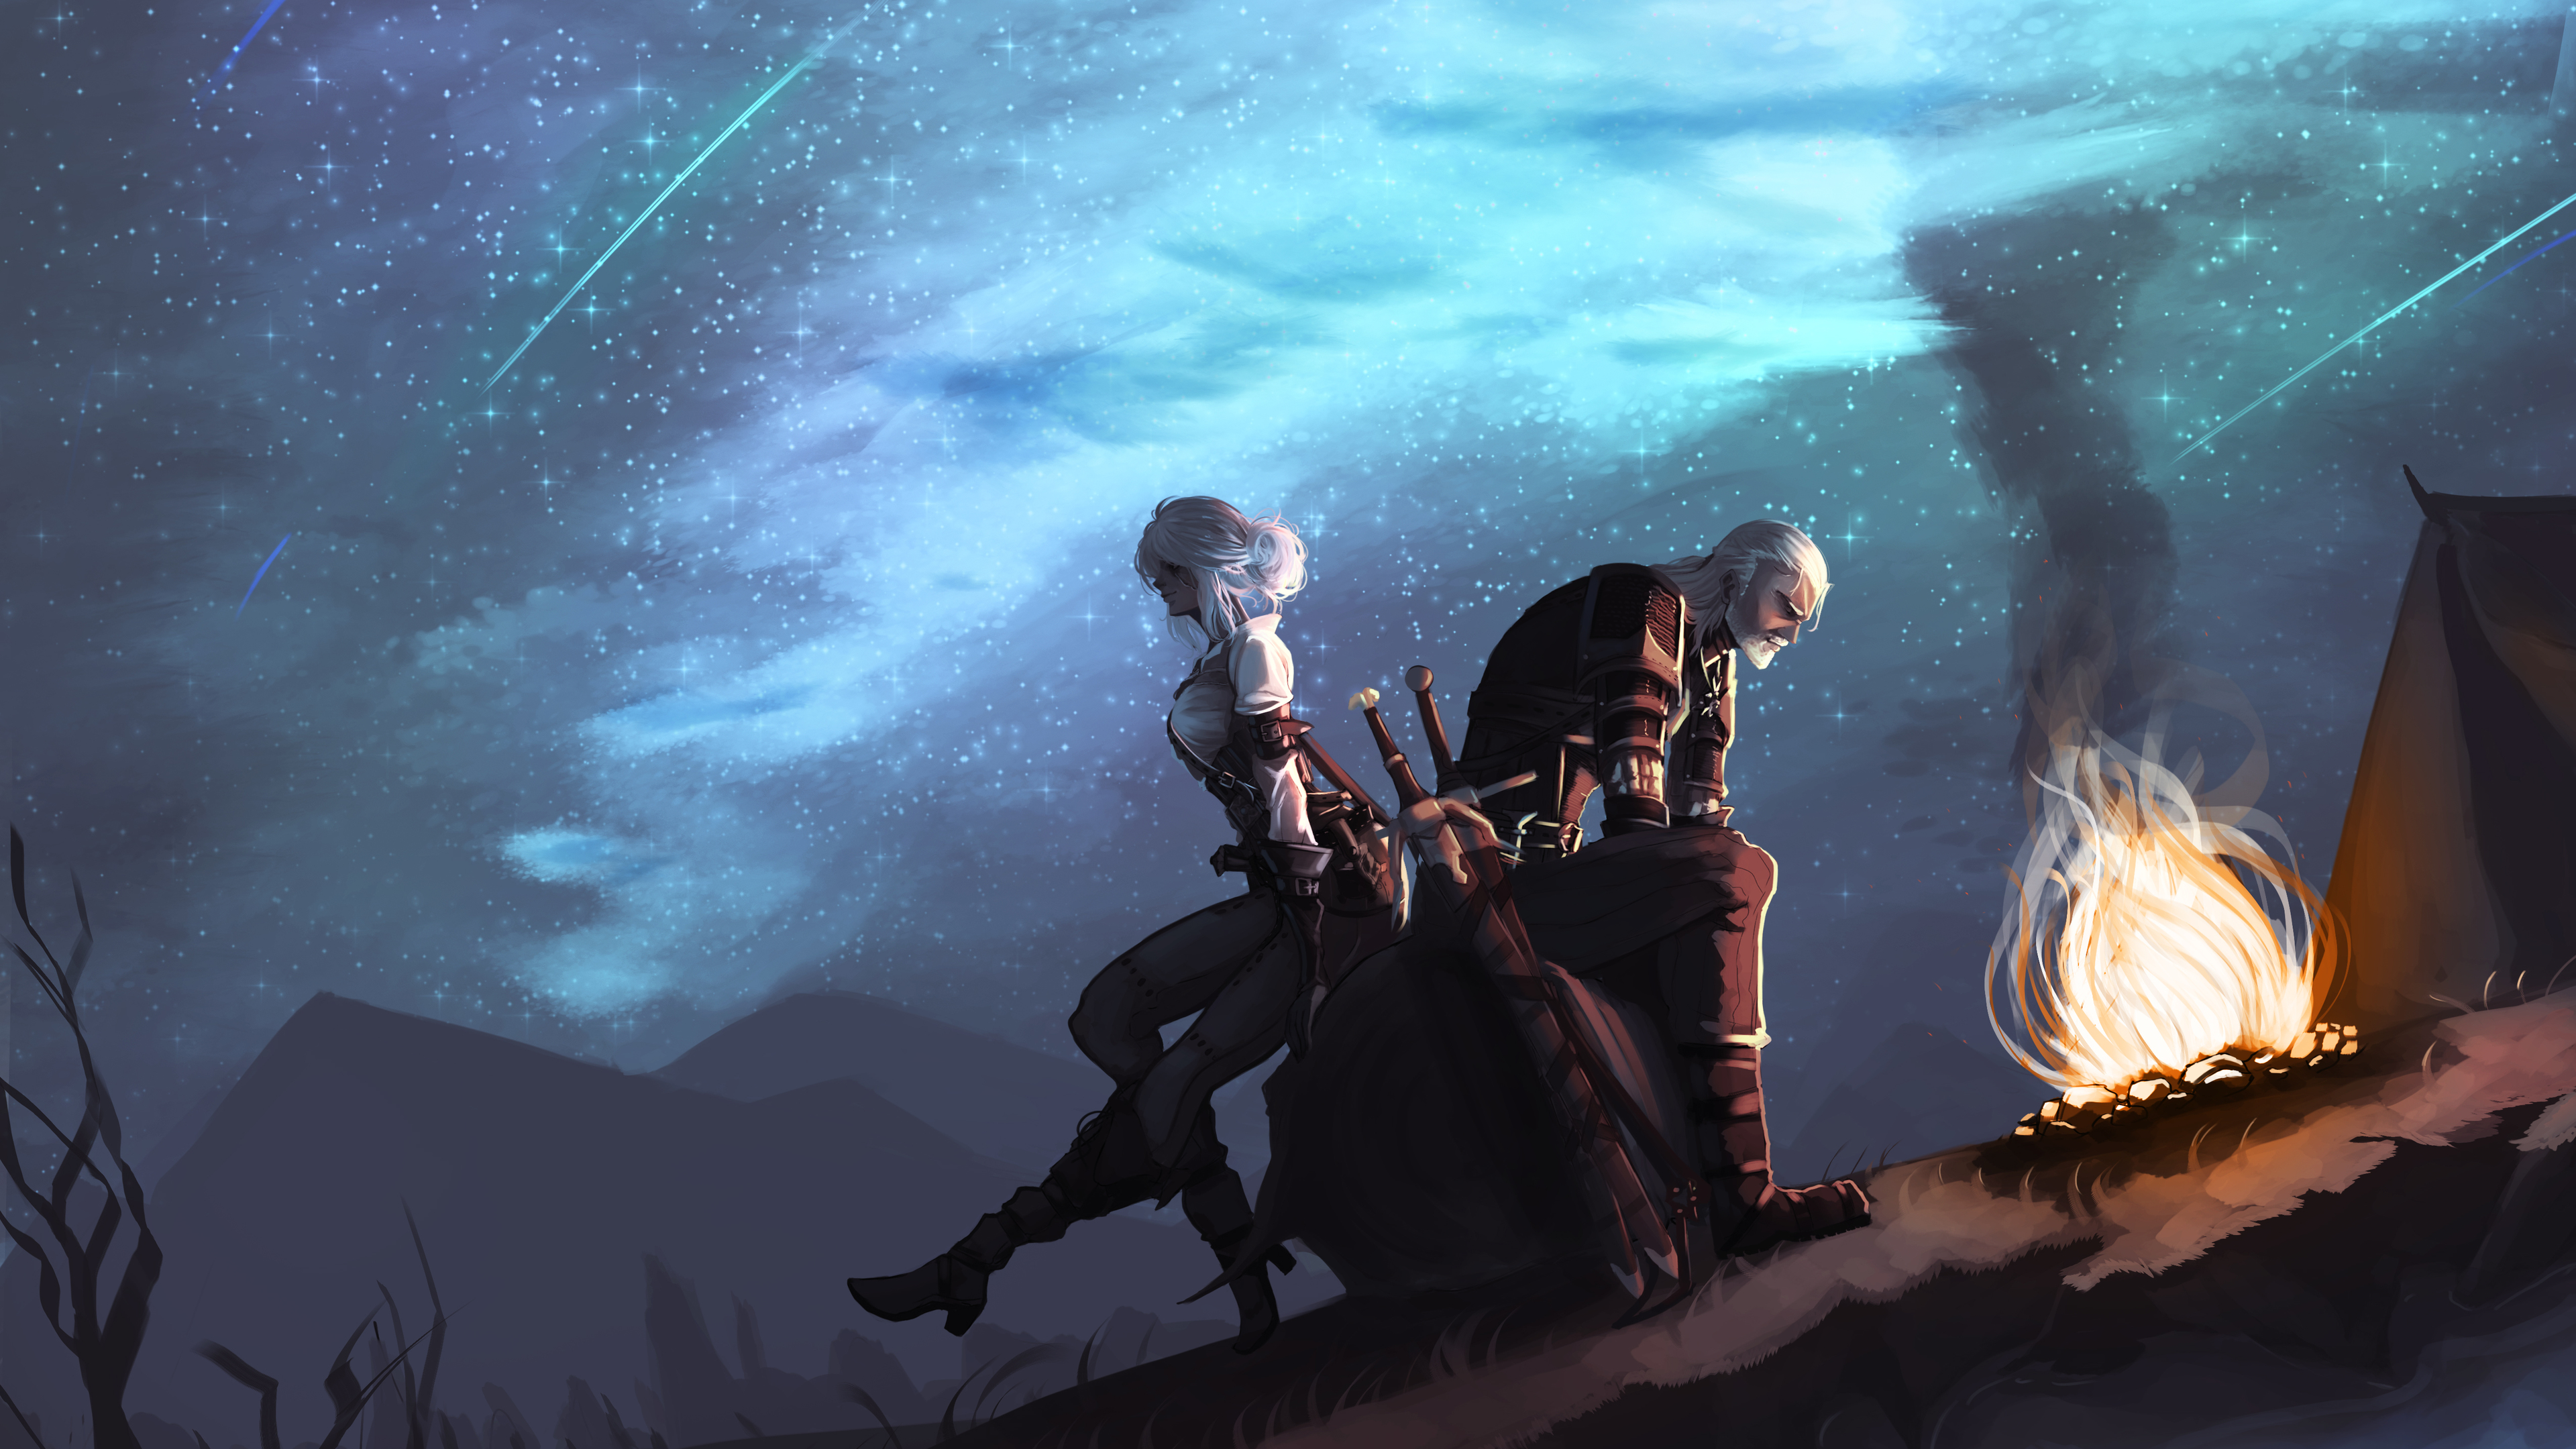 ciri and geralt 4k 1543620991 - Ciri And Geralt 4k - xbox games wallpapers, the witcher 3 wallpapers, ps4 games wallpapers, pc games wallpapers, hd-wallpapers, geralt of rivia wallpapers, games wallpapers, ciri wallpapers, artstation wallpapers, 4k-wallpapers